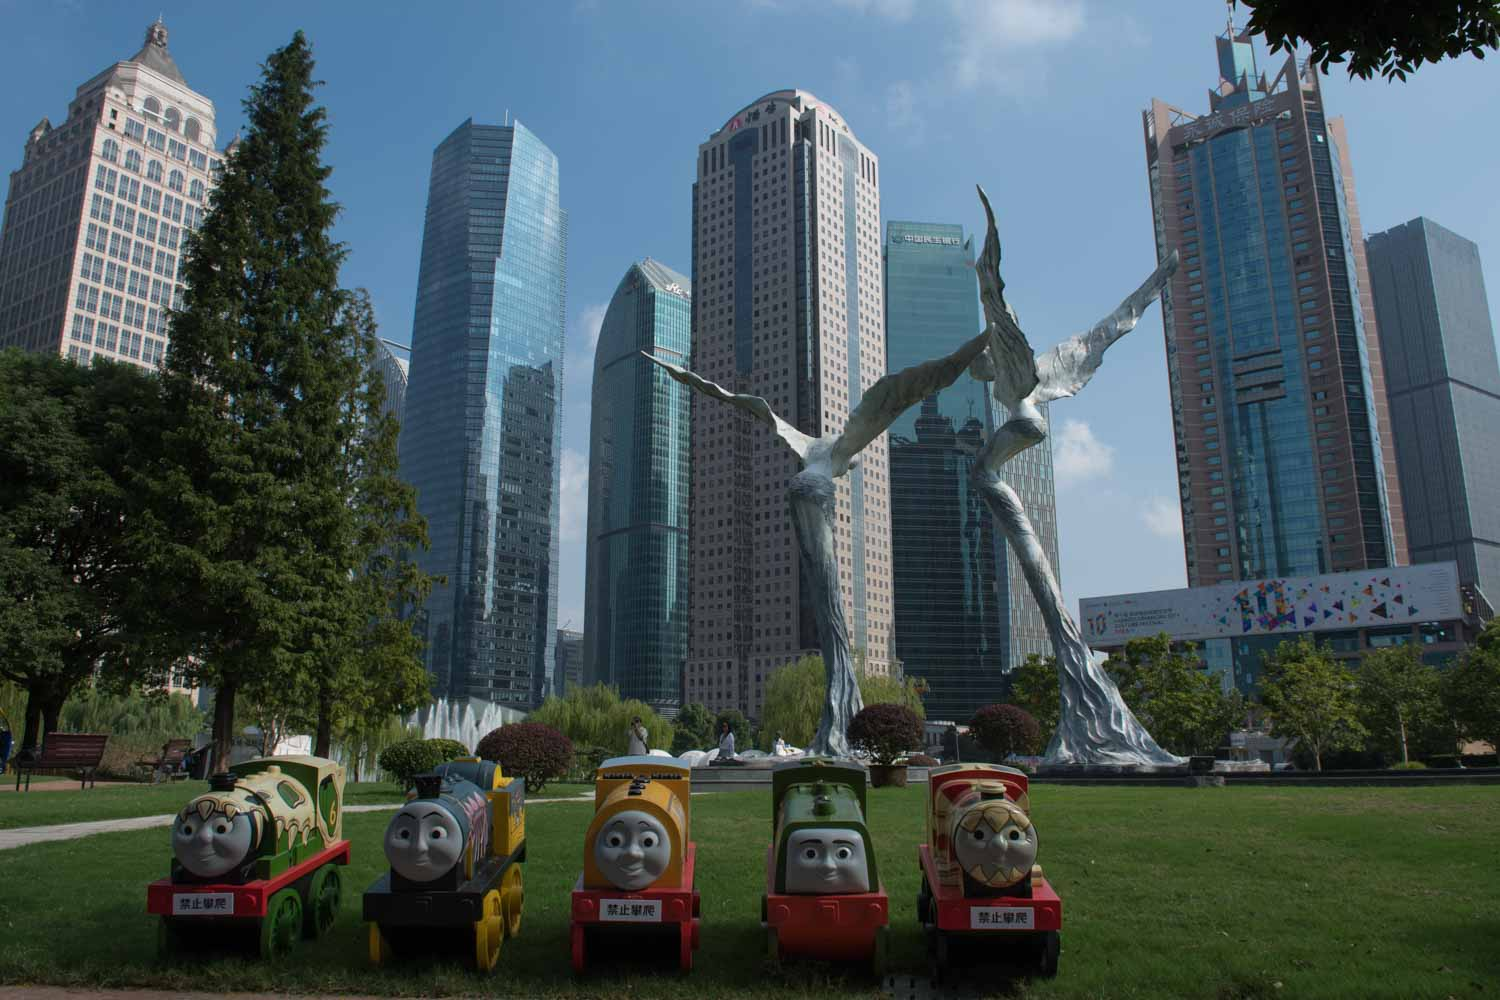 Lujiazui Central Green Space, Pudong, Shanghai (陆家嘴中心绿地,上海)